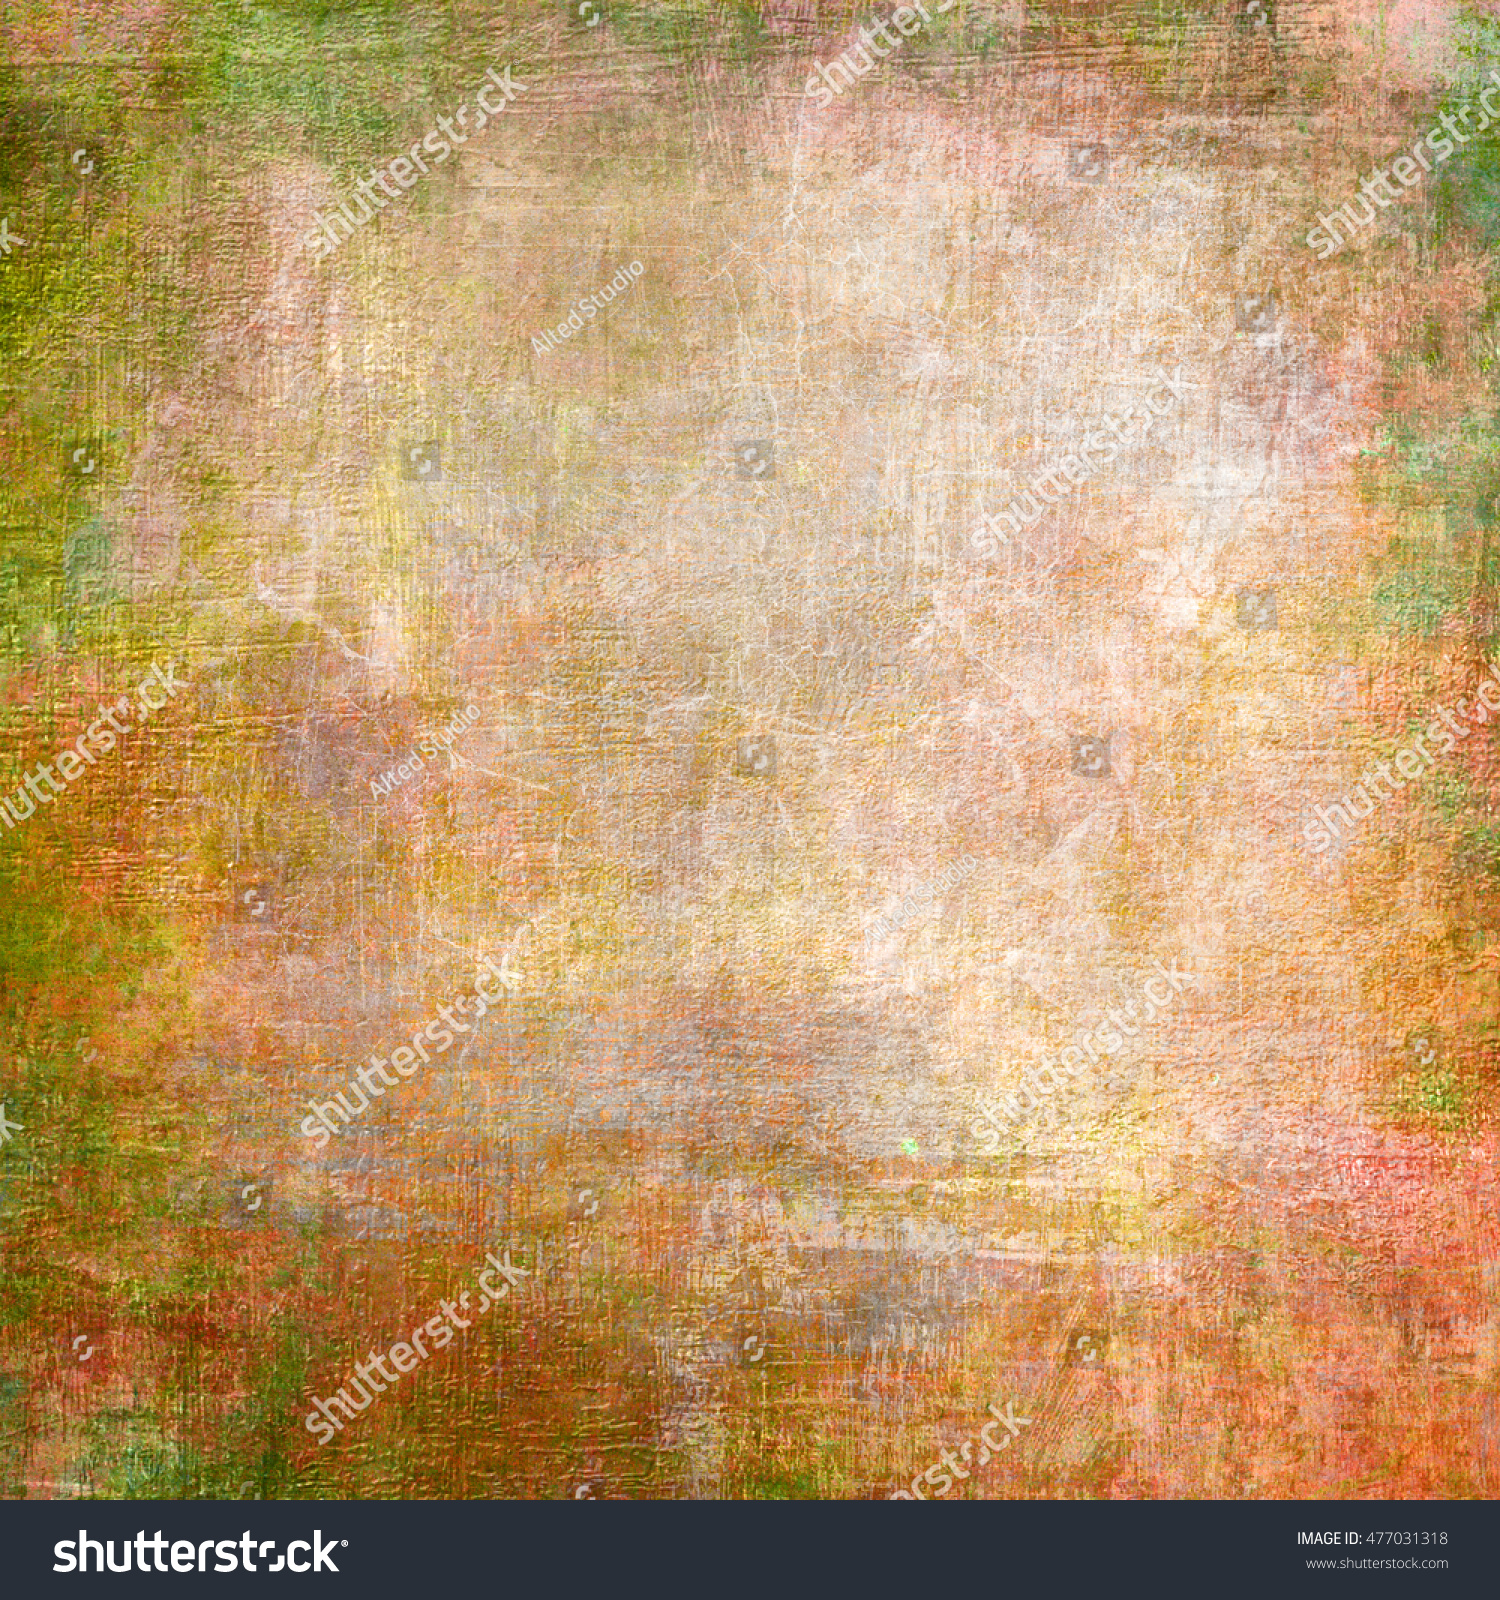 Abstract old grunge brown and green wall background | EZ Canvas